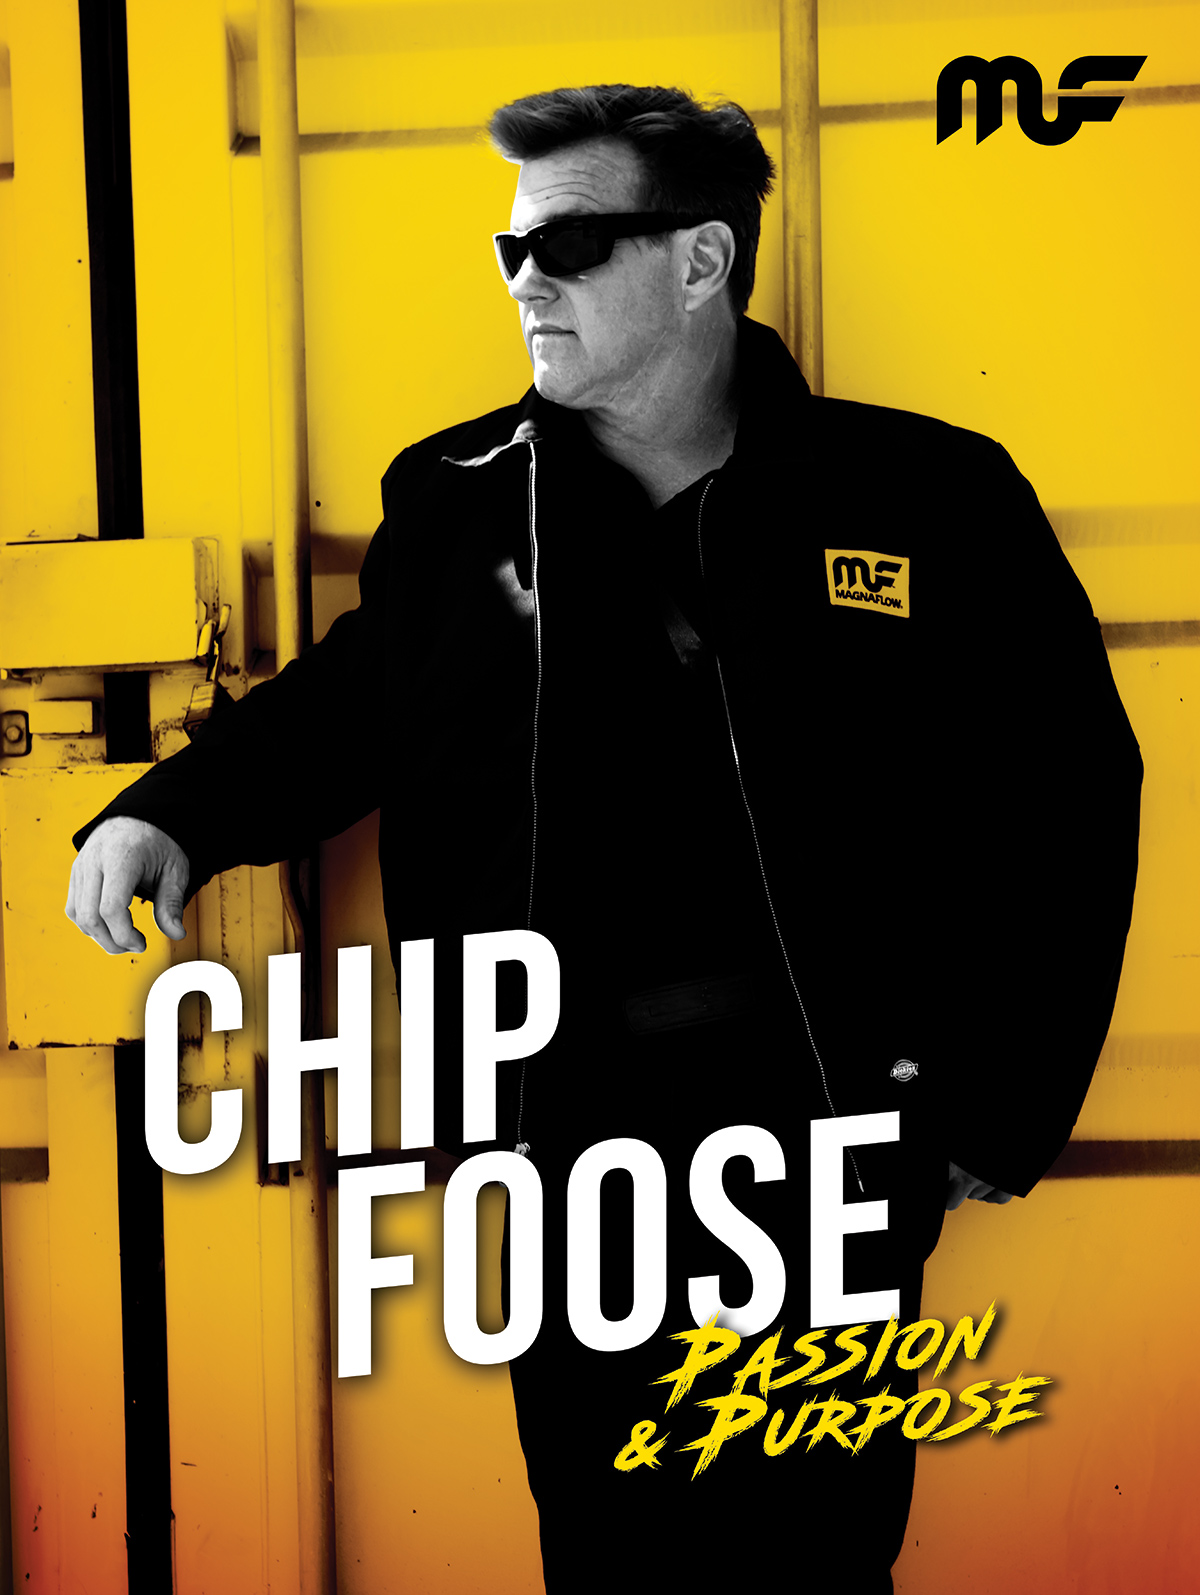 ChipFoose.jpg